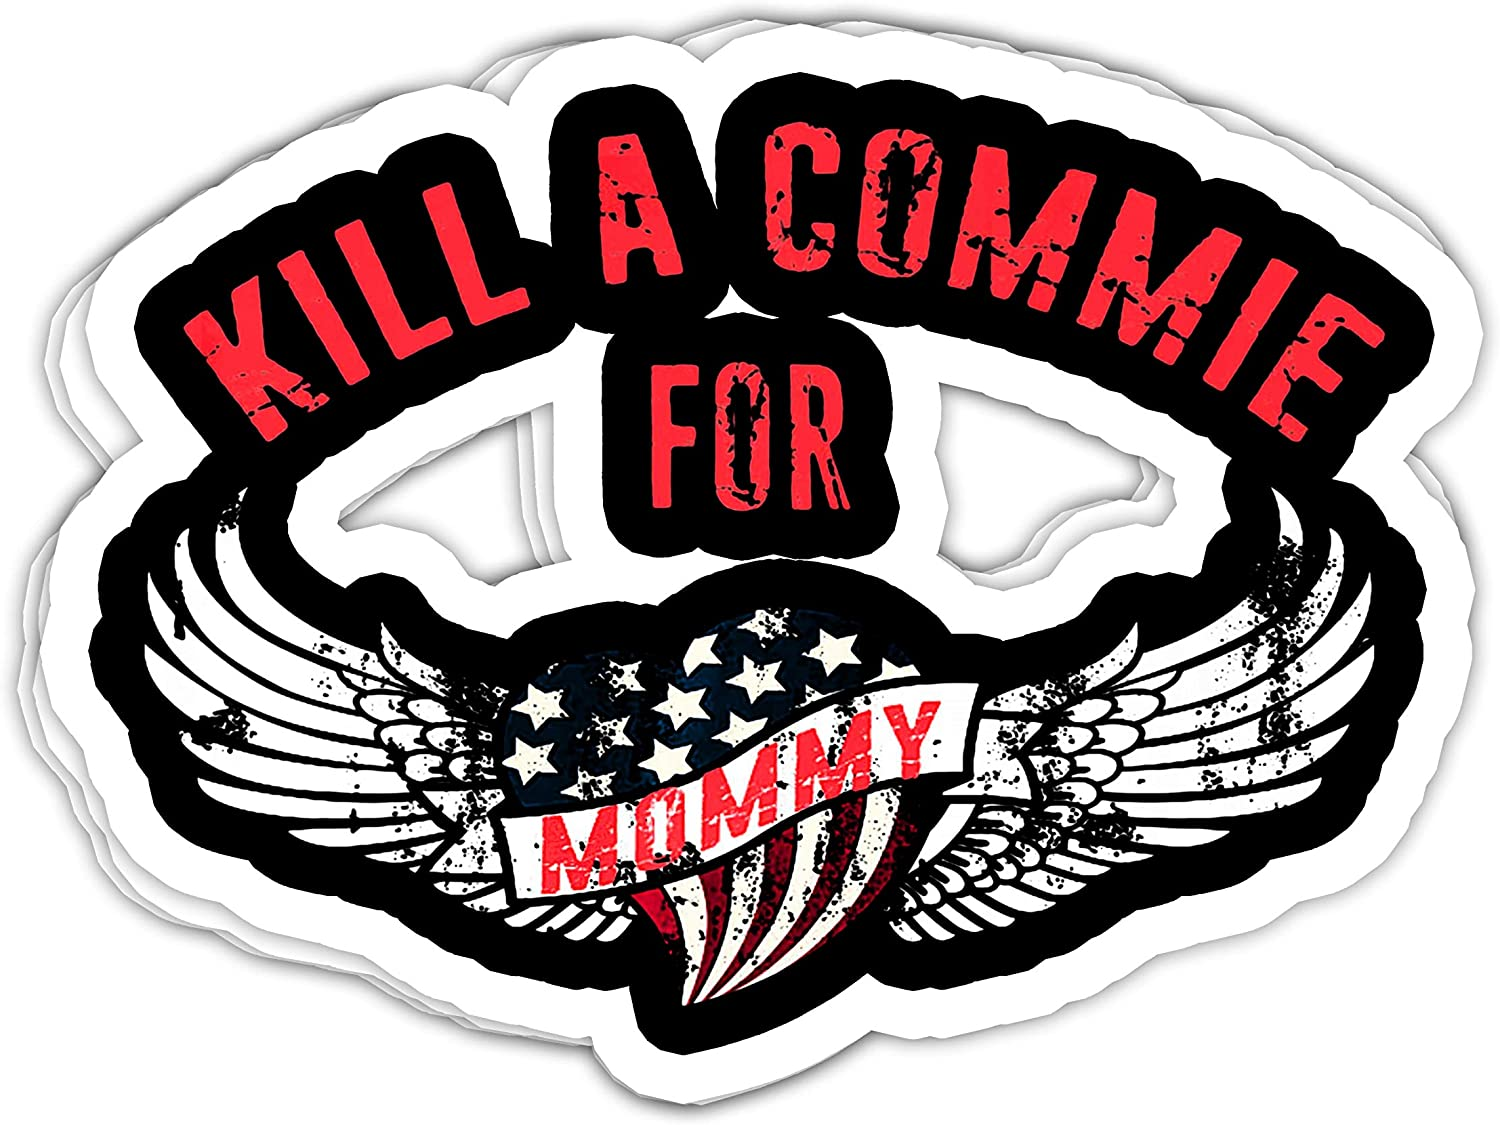 Maximili Kill a Commie for Mommy Cold War Tattoo Anti Communism USA- 4x3 Vinyl Stickers, Laptop Decal, Water Bottle Sticker (Set of 3)